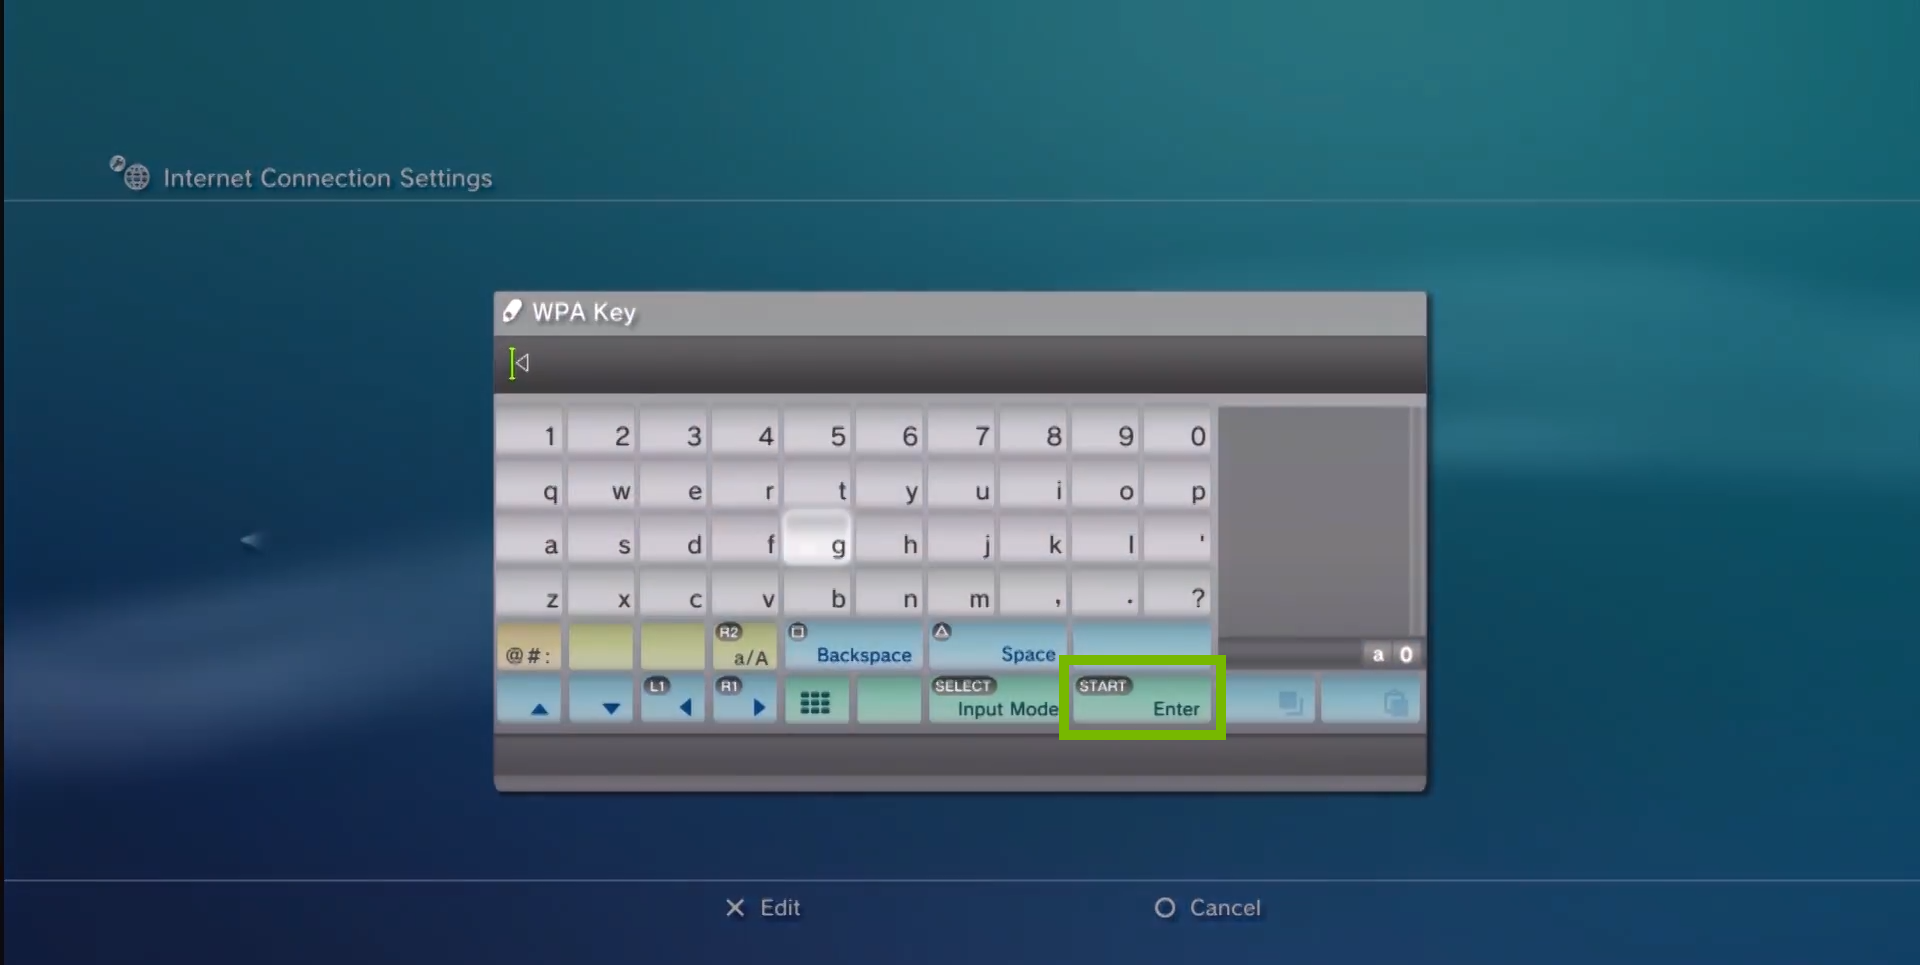 virtual keyboard with WPA key box where password is displayed and enter button is highlighted